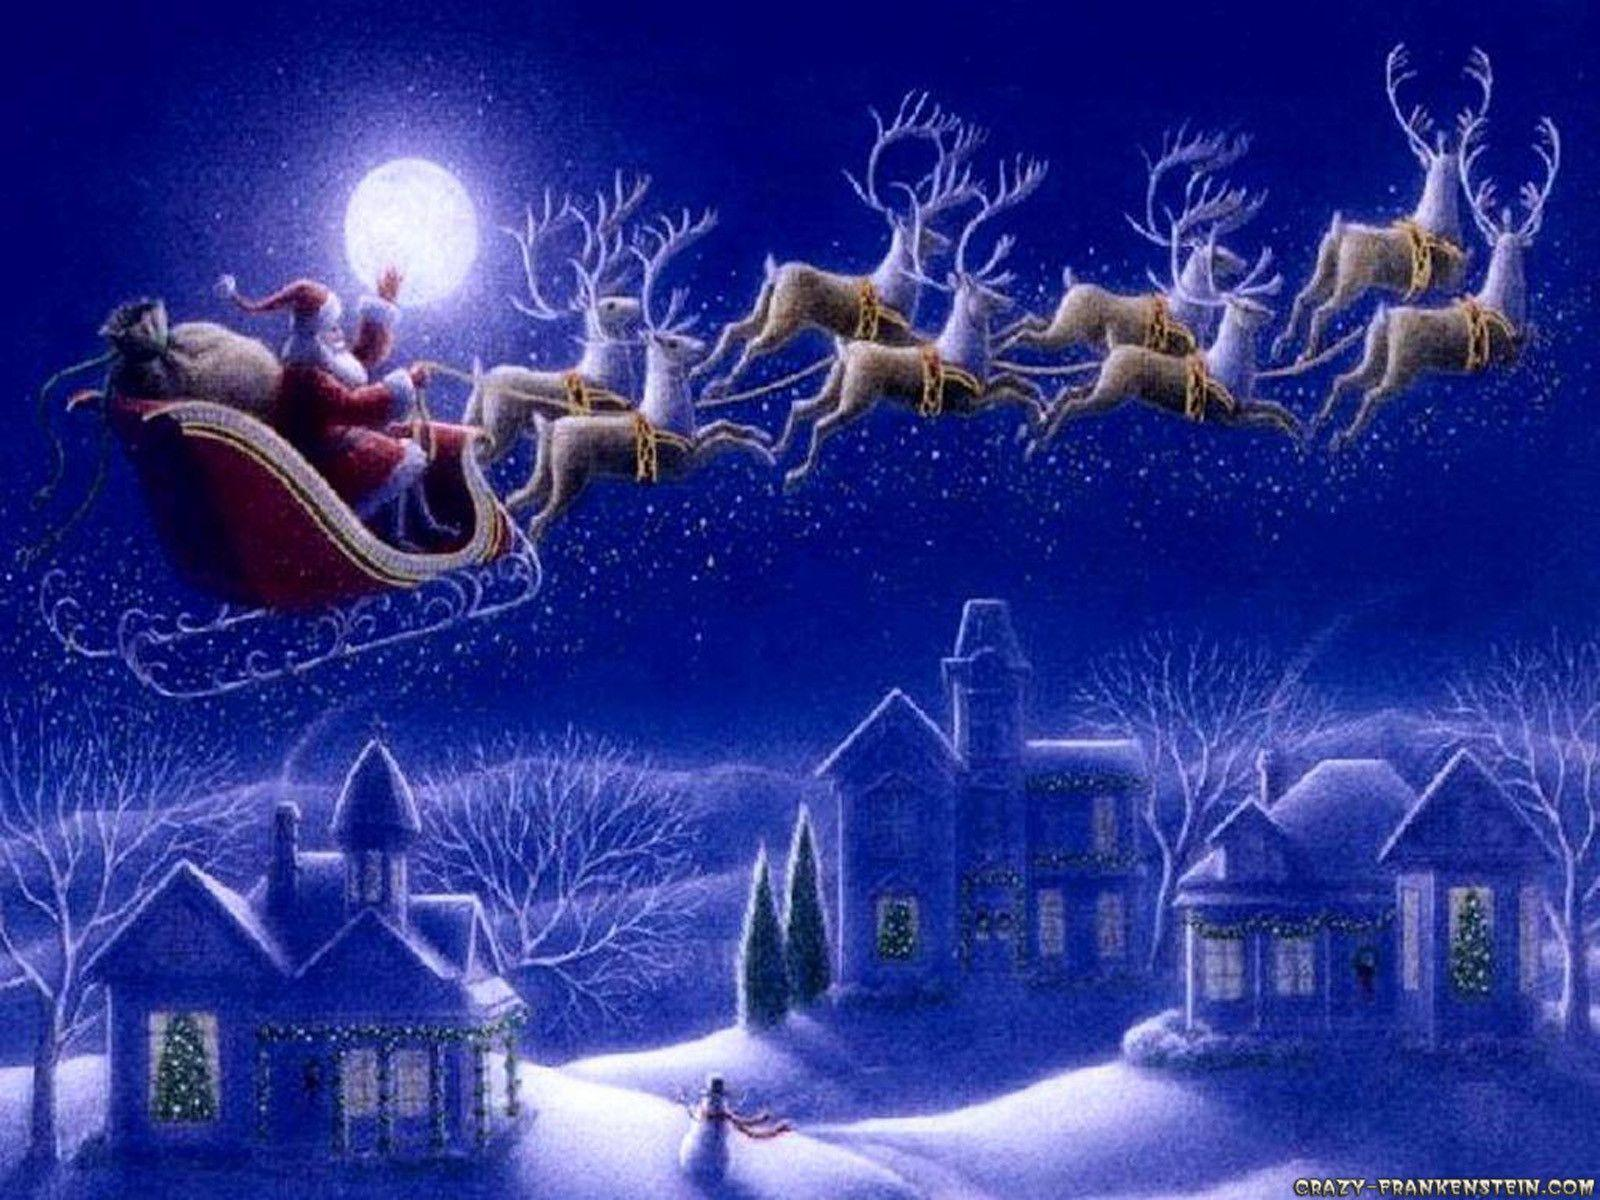 Merry Christmas Wallpapers Image - Wallpaper Cave